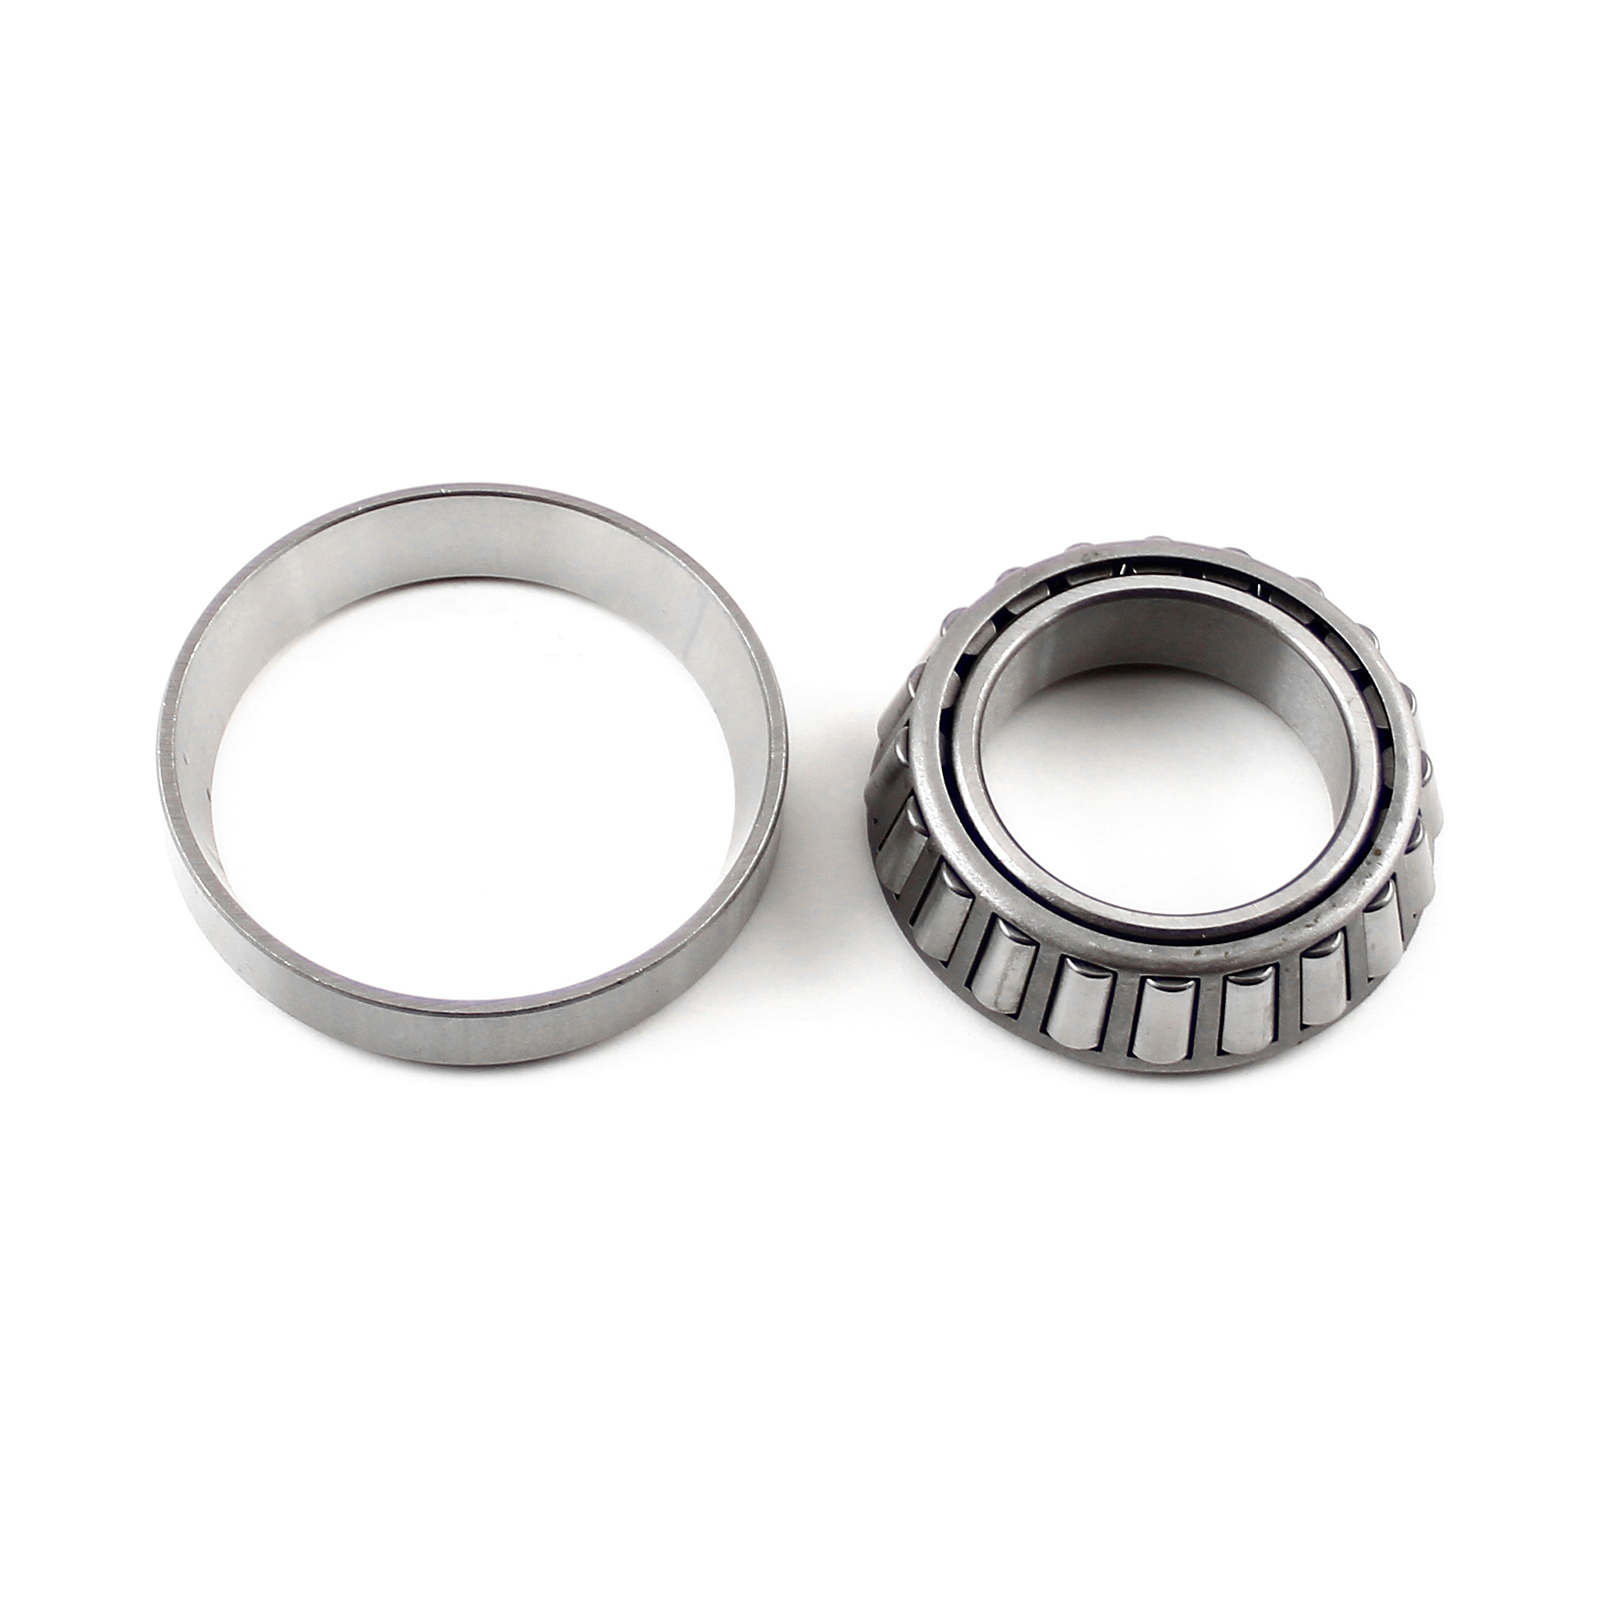 Carrier Bearing Industry Std Ref: Lm603049/ 011